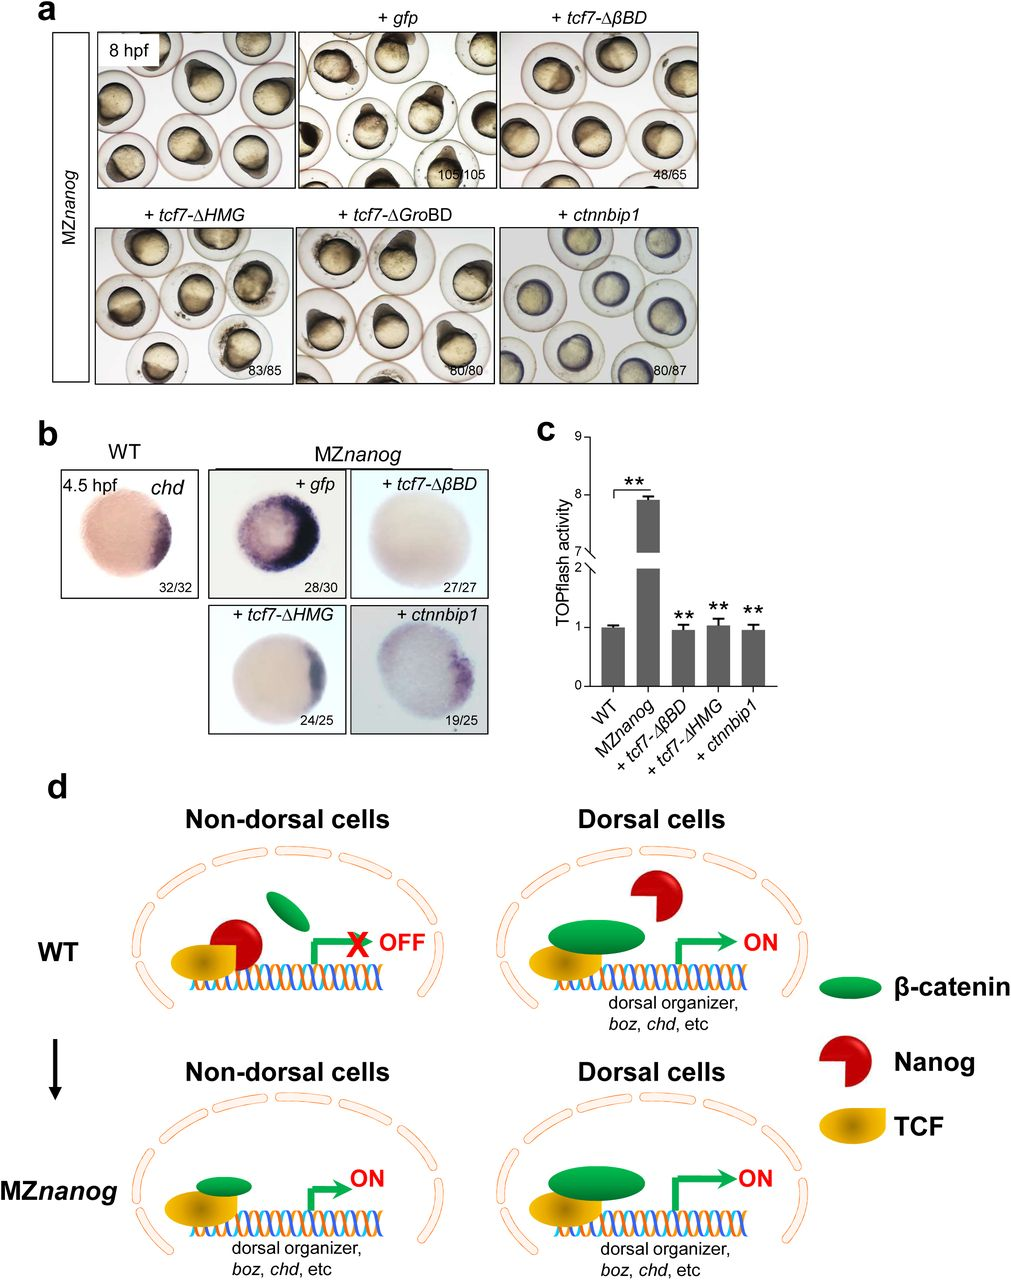 Confrontation of the β-catenin transcriptional activity in nucleus rescues the developmental defect of MZ nanog . ( a ) Overexpression of tcf7-Δ βBD, tcf7-ΔHMG , or ctnnbip1 mRNA rescued the dorsalization phenotype of MZ nanog , while overexpression of tcf7-ΔGroBD did not. Phenotype was observed at 8 hpf. At least 50 embryos were injected and three independent experiments were performed. ( b ) Excessive and ectopic expression of chd in MZ nanog was rescued by overexpression of tcf7-Δ βBD, tcf7-ΔHMG , or ctnnbip1 . WISH analysis of chd was detected at 4.5 hpf. ( c ) Detection of TOPflash activity in rescued MZ nanog embryos. ** means p